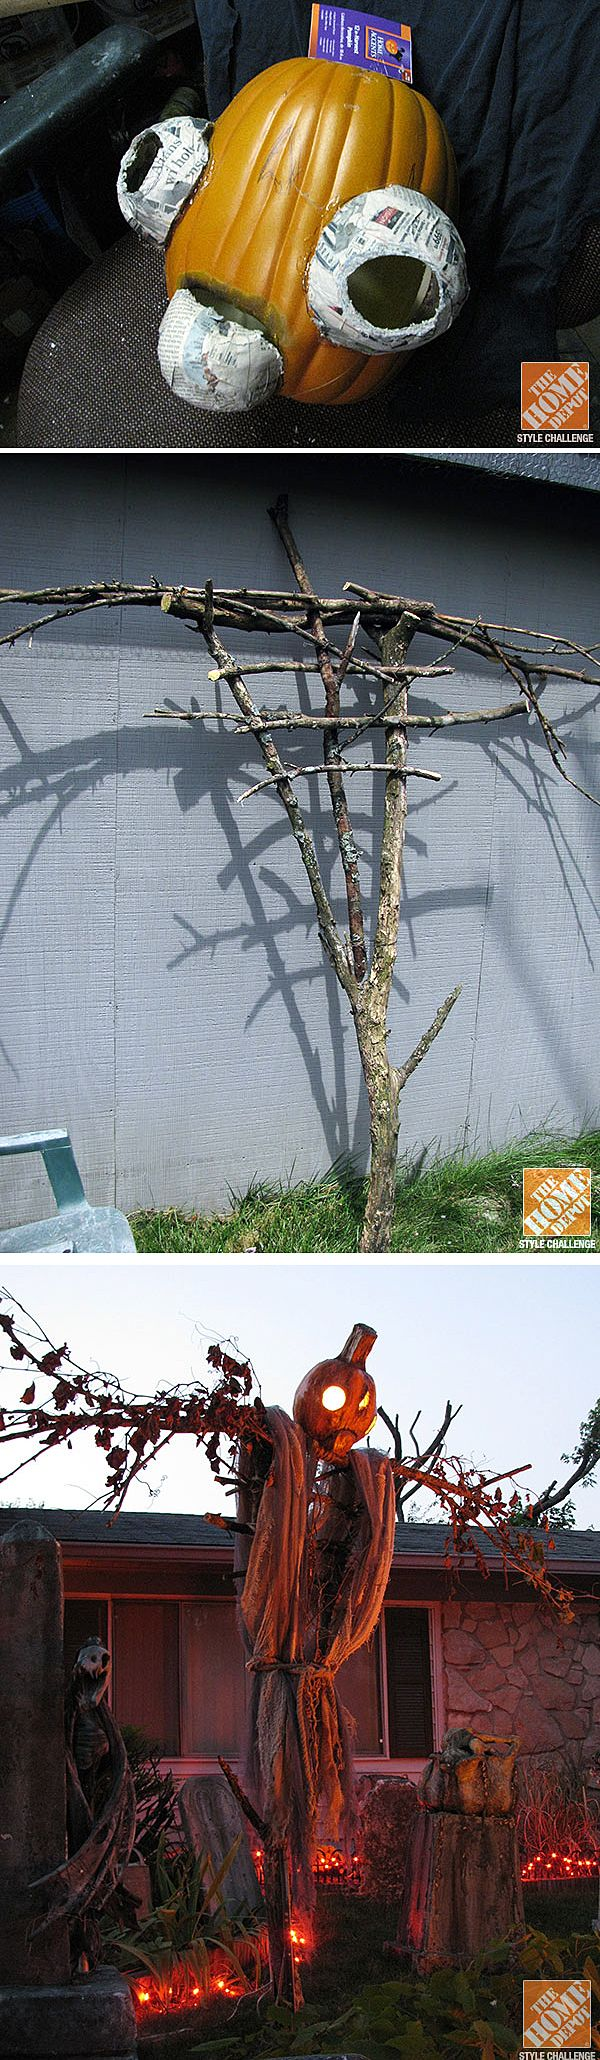 Best 25 Halloween Yard Displays Ideas On Pinterest Sleepy Hollow Halloween Spooky Halloween: halloween decorations home depot